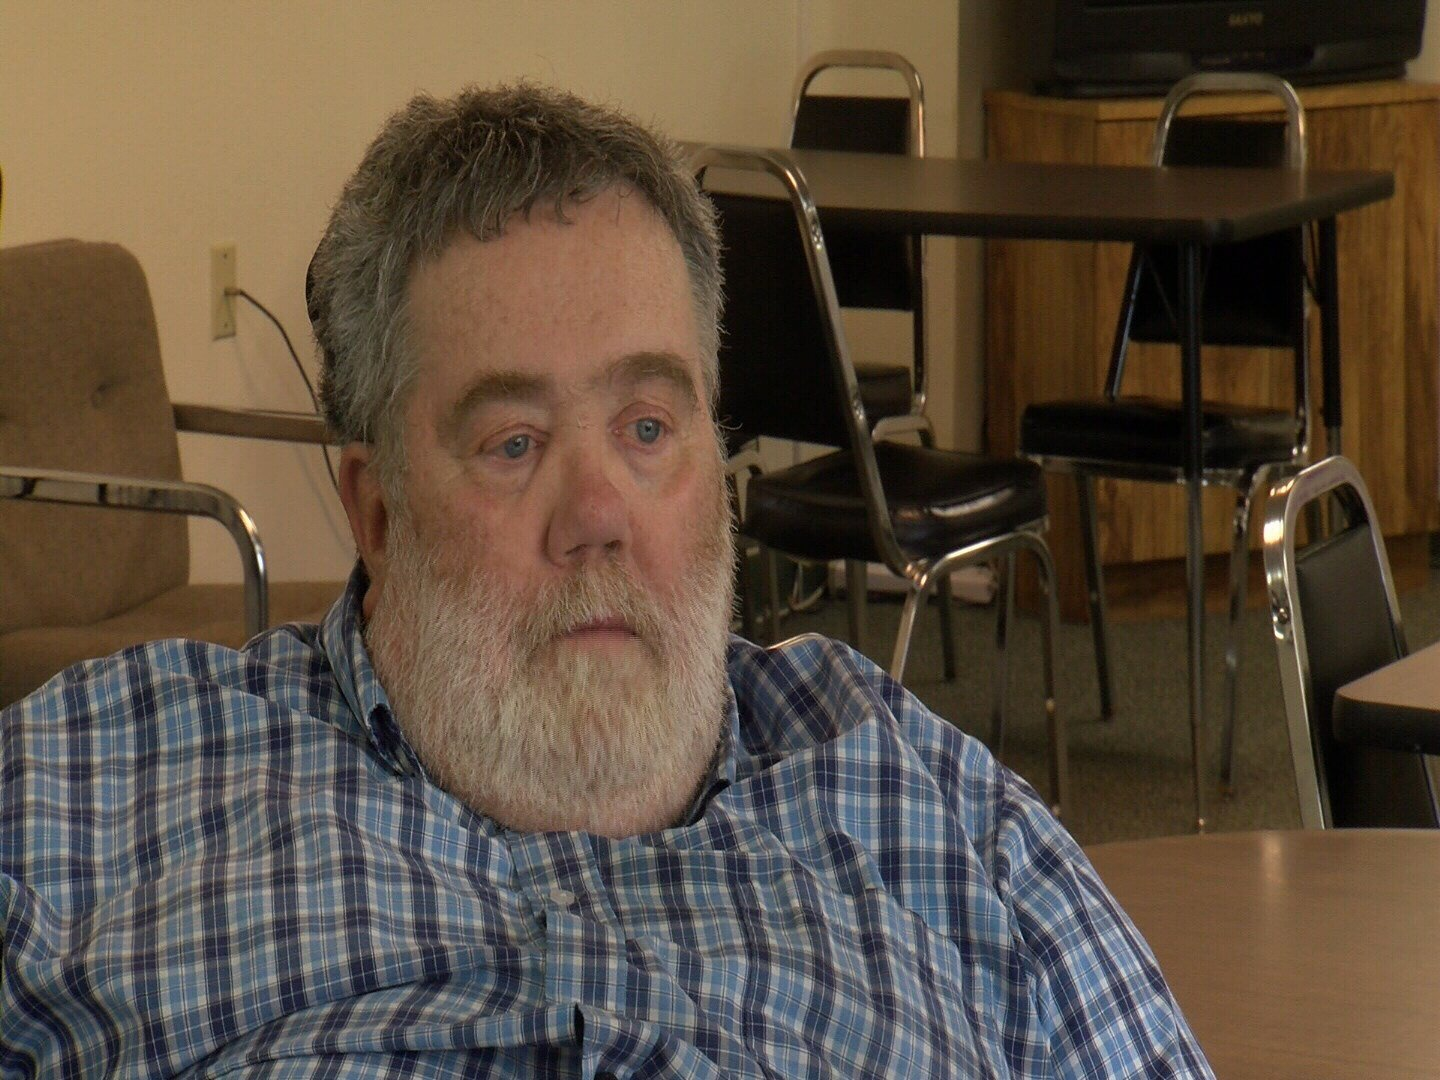 Stephen Hamer is well known in the community. He spent time in prison and turned his life around---becoming an advocate for people with disabilities.